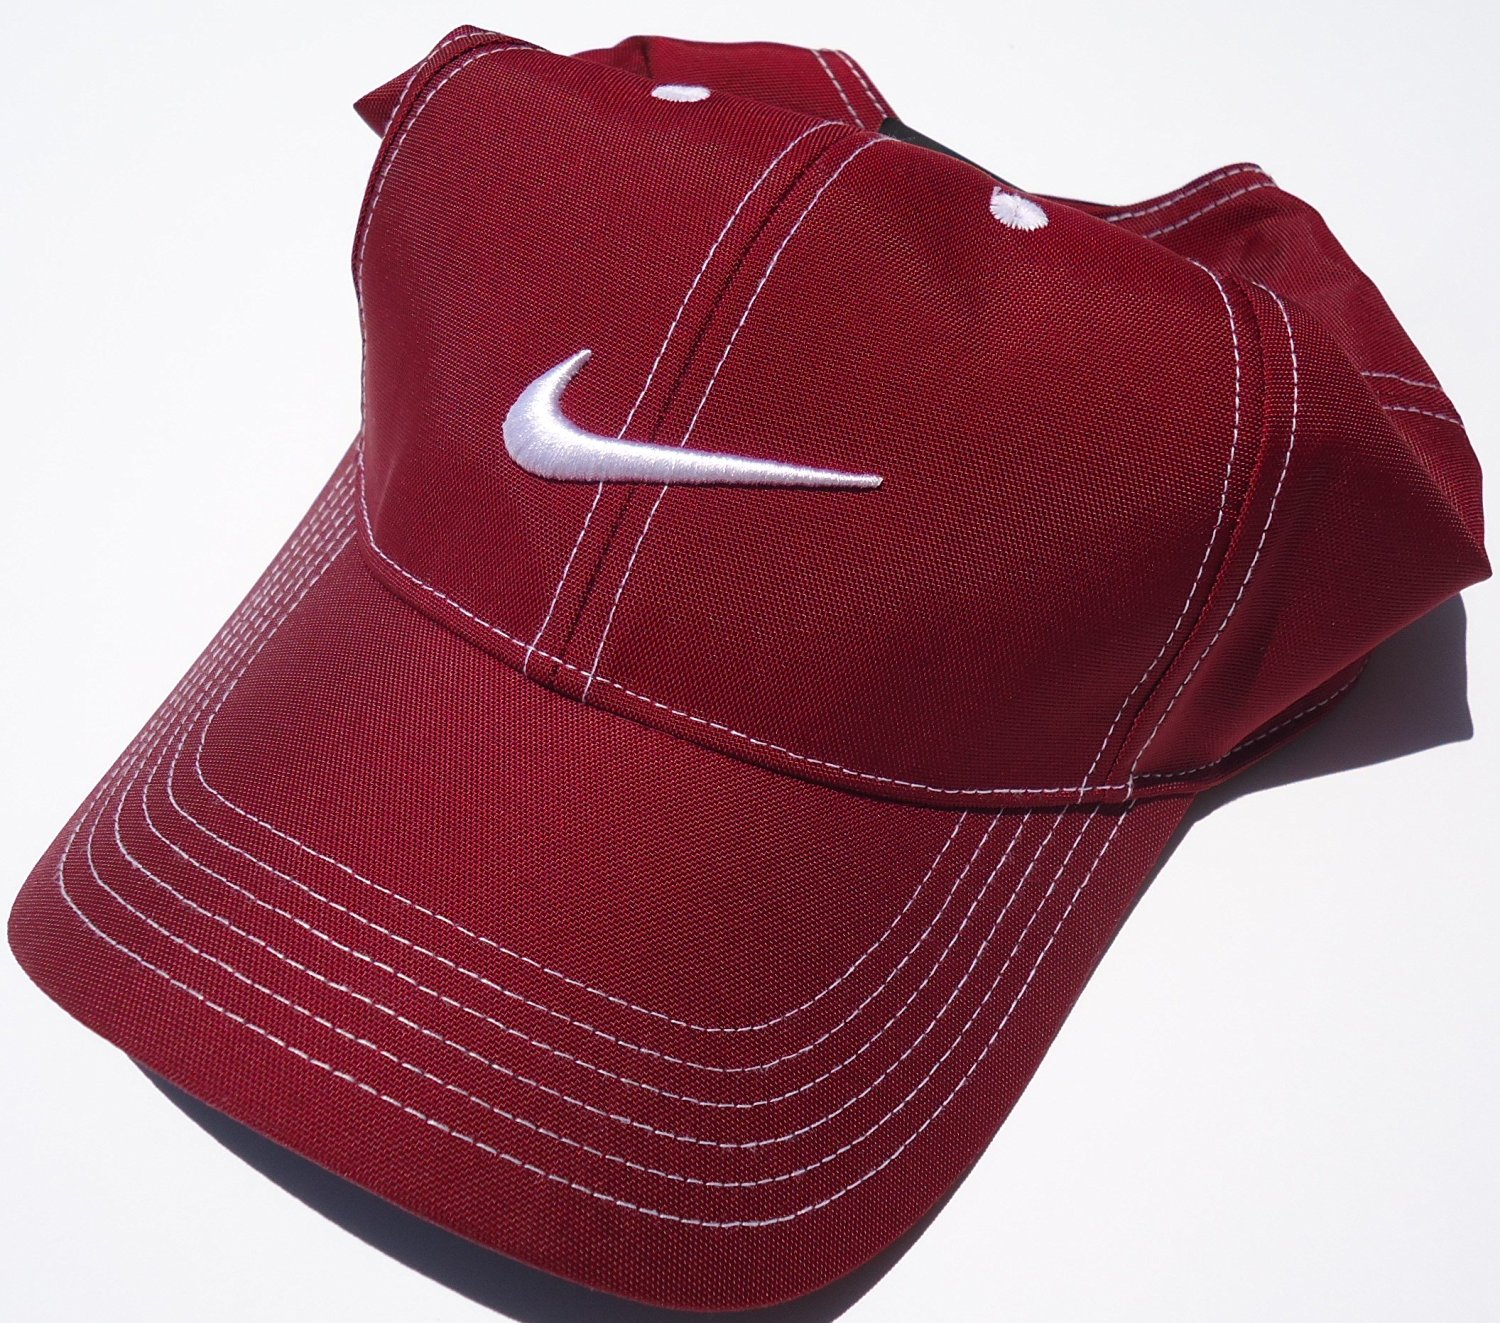 f81a334ca0f5f9 Buy Nike Adult Unisex DRI-FIT Golf Cap by NIKEGOLF 100% Polyester ...